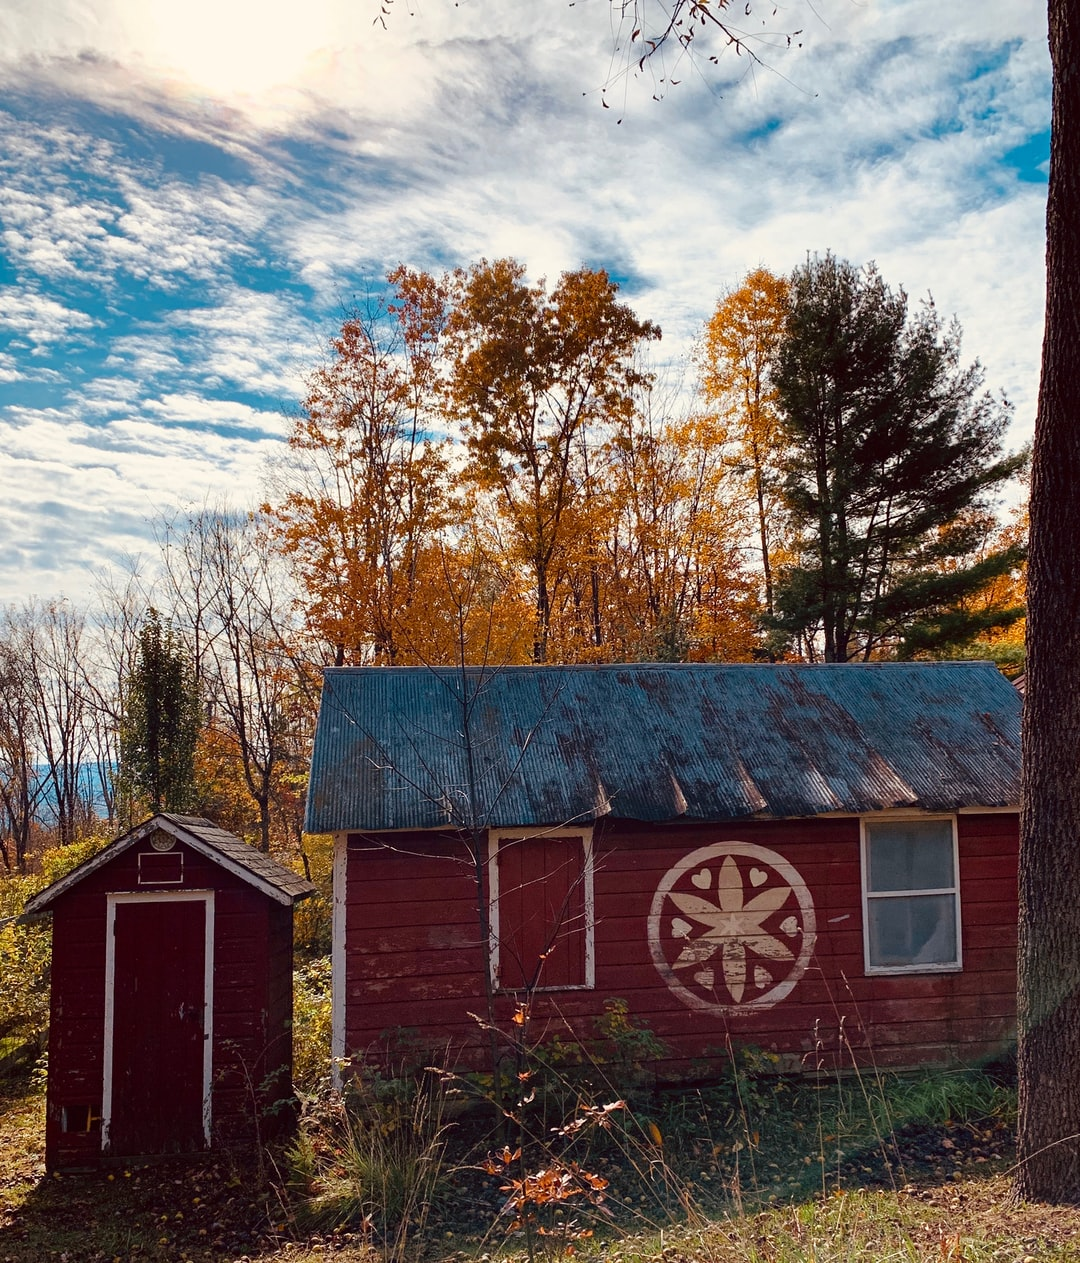 Fall colors, red barns, nature walks, peace, and country living.